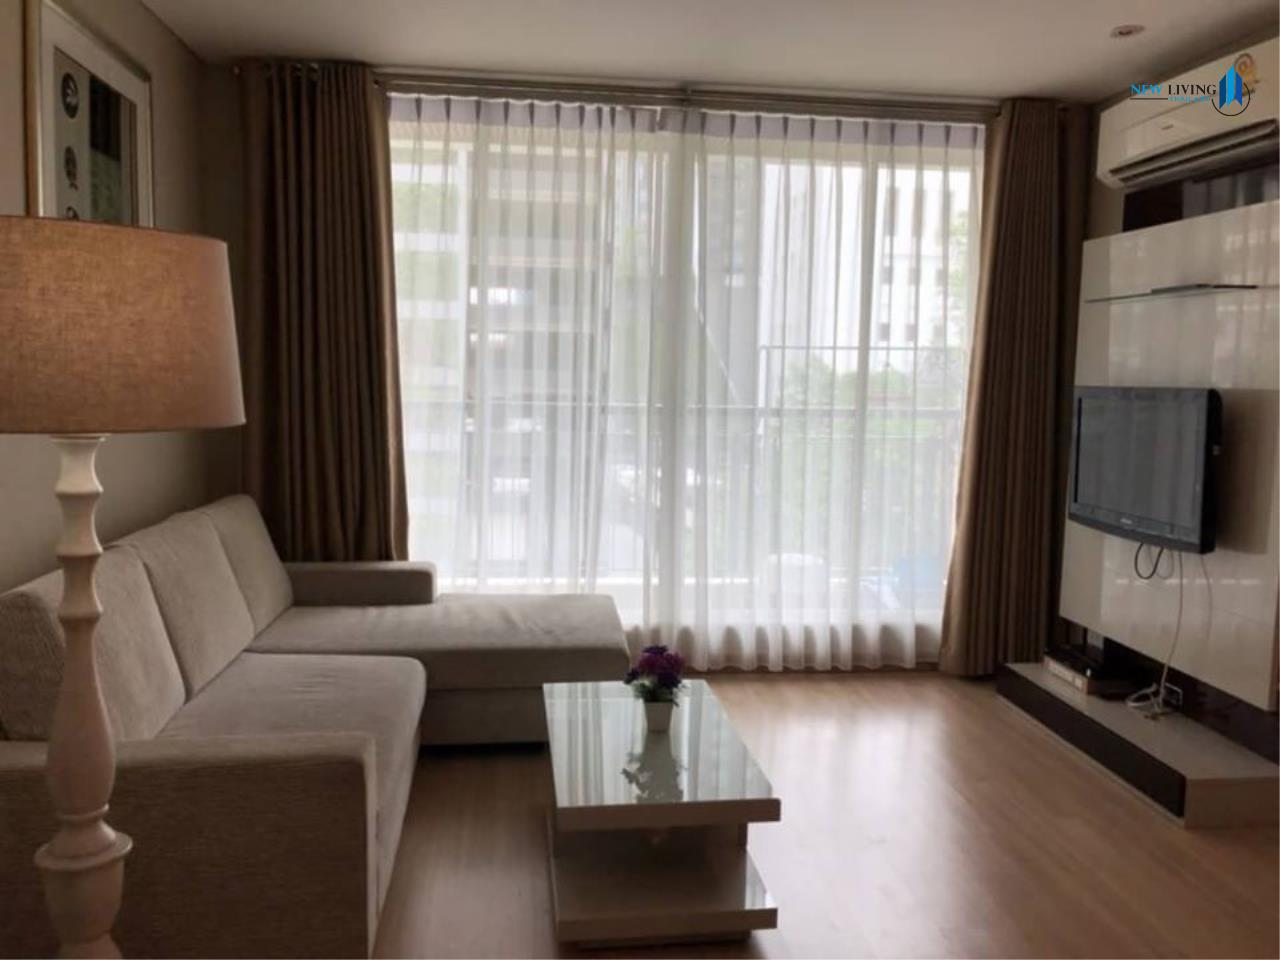 New Living Thailand Agency's For rent, The Address Pathumwan, near Ratchathewi BTS, 2 bedrooms, 60 sq.m., east, fully furnished 1